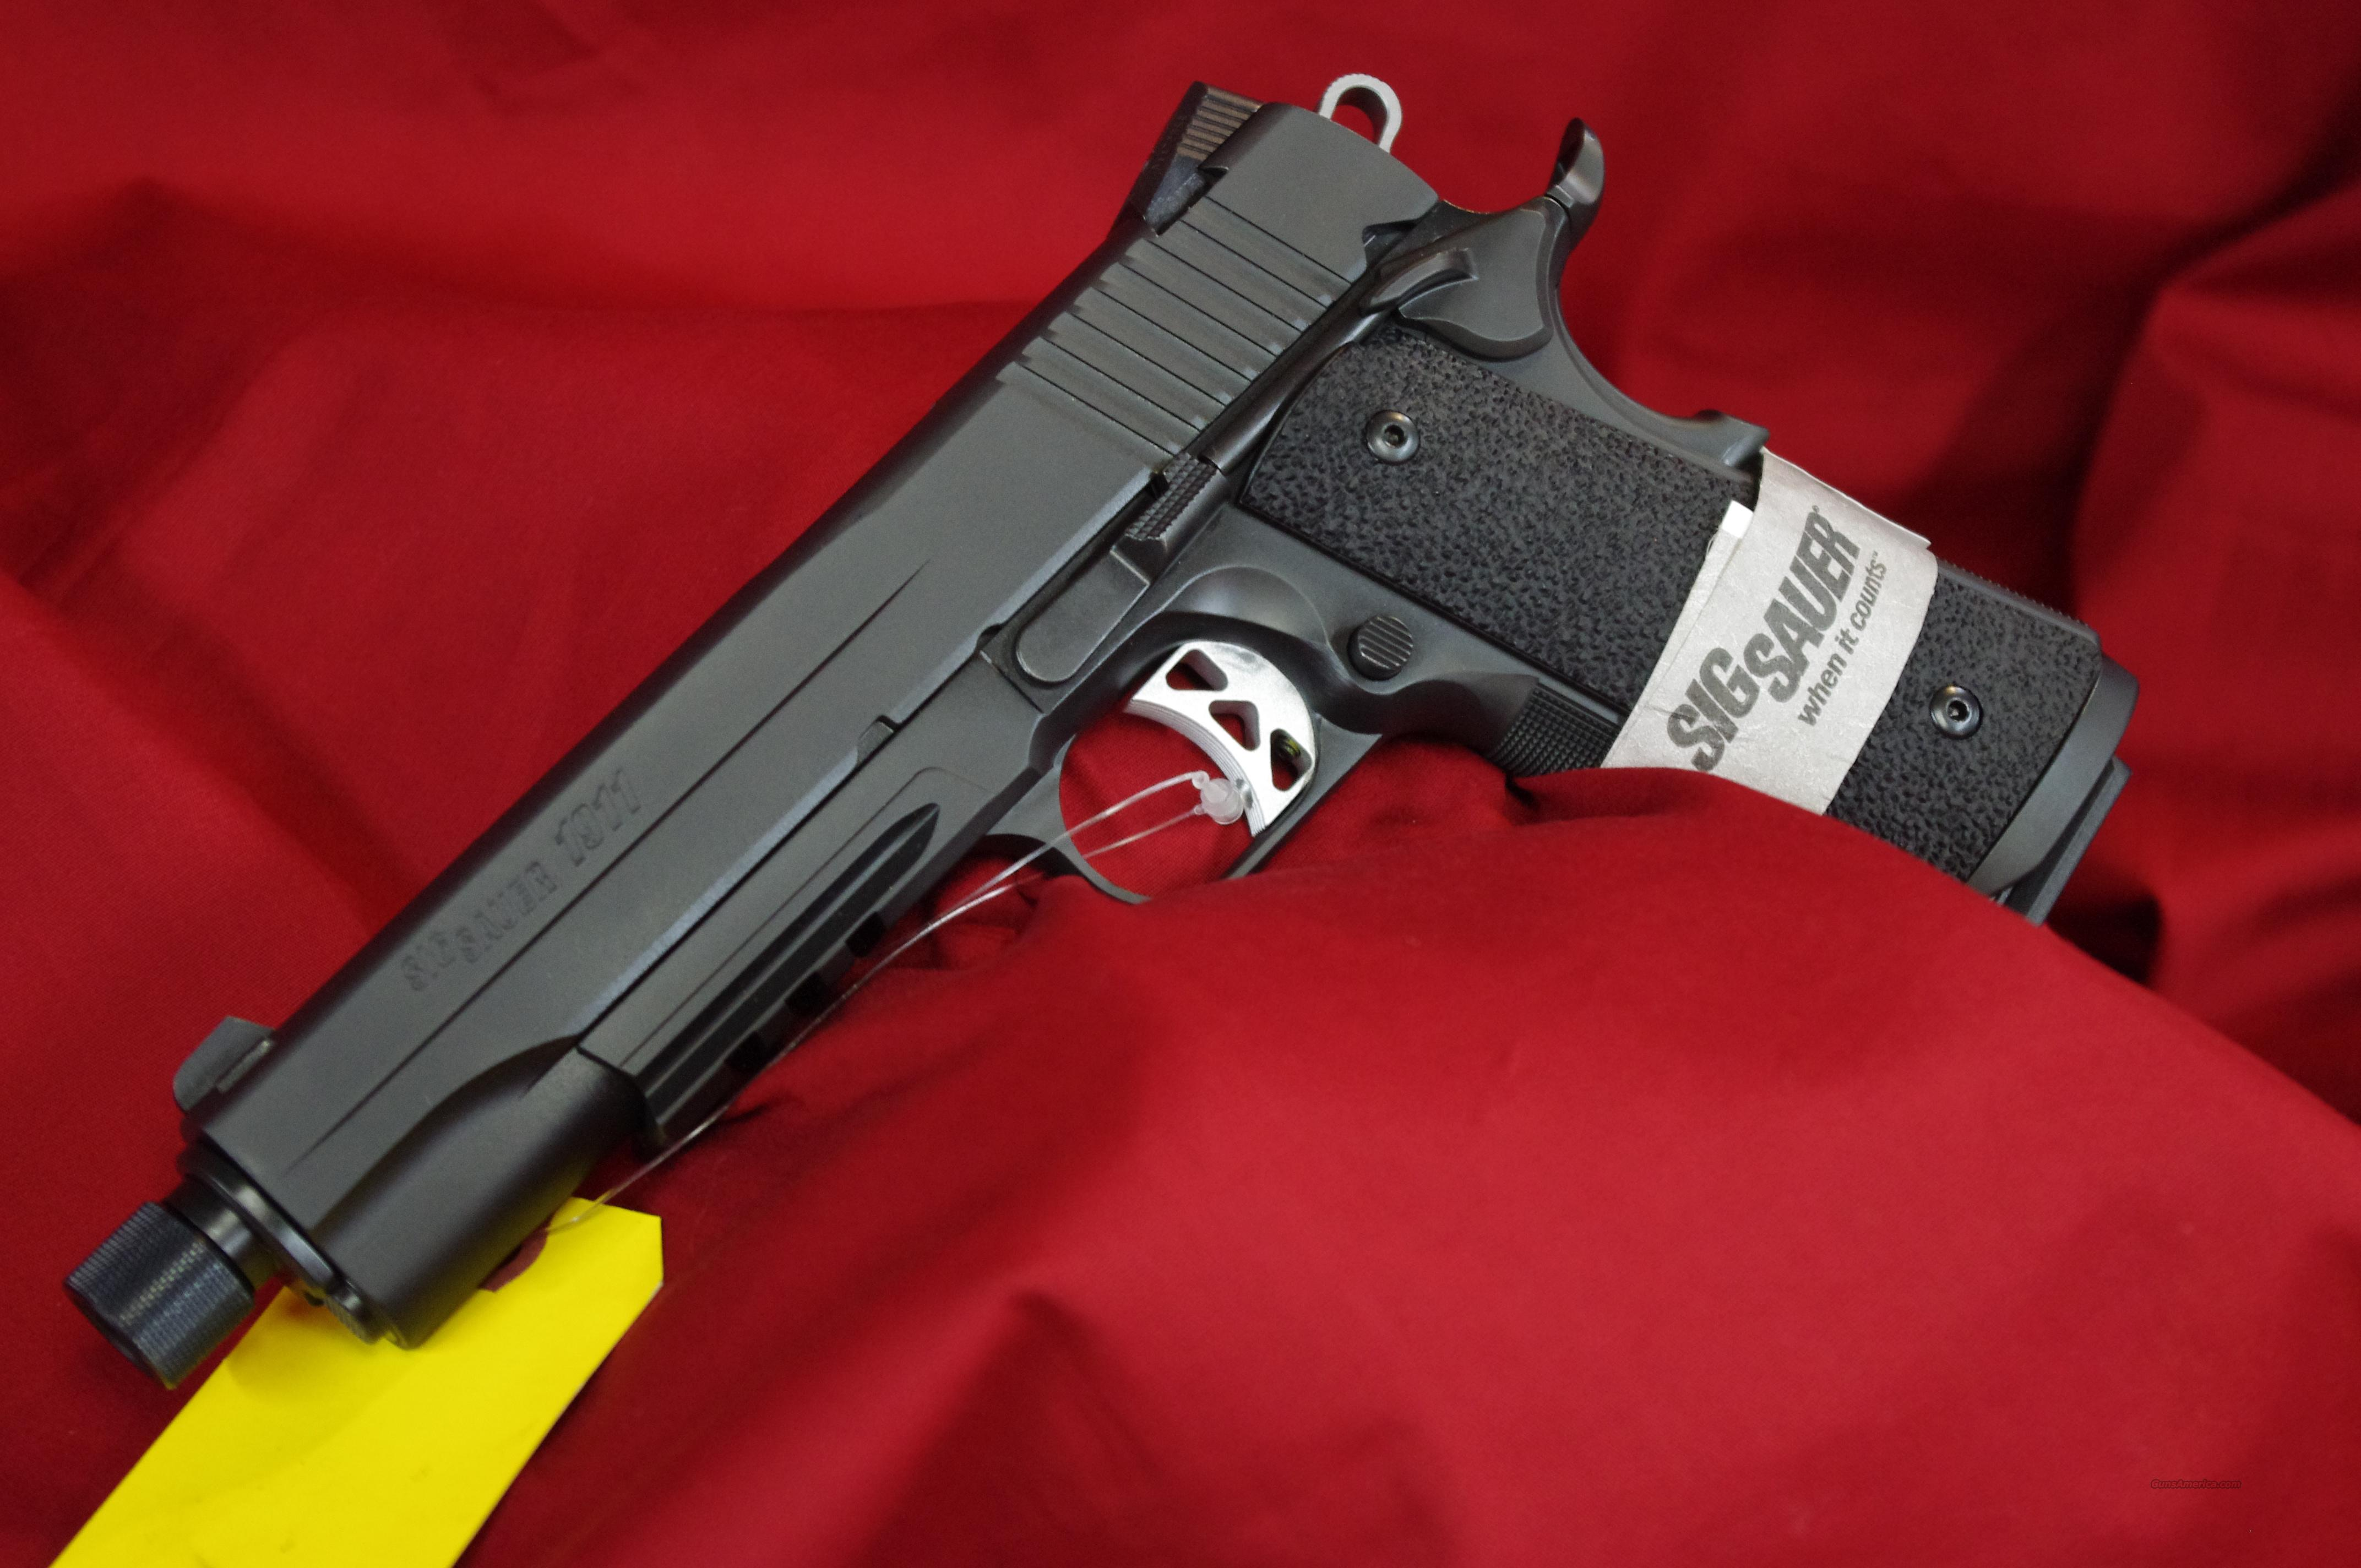 Sig Sauer Tac Ops 1911 With Threaded Barrel!  Guns > Pistols > Sig - Sauer/Sigarms Pistols > 1911